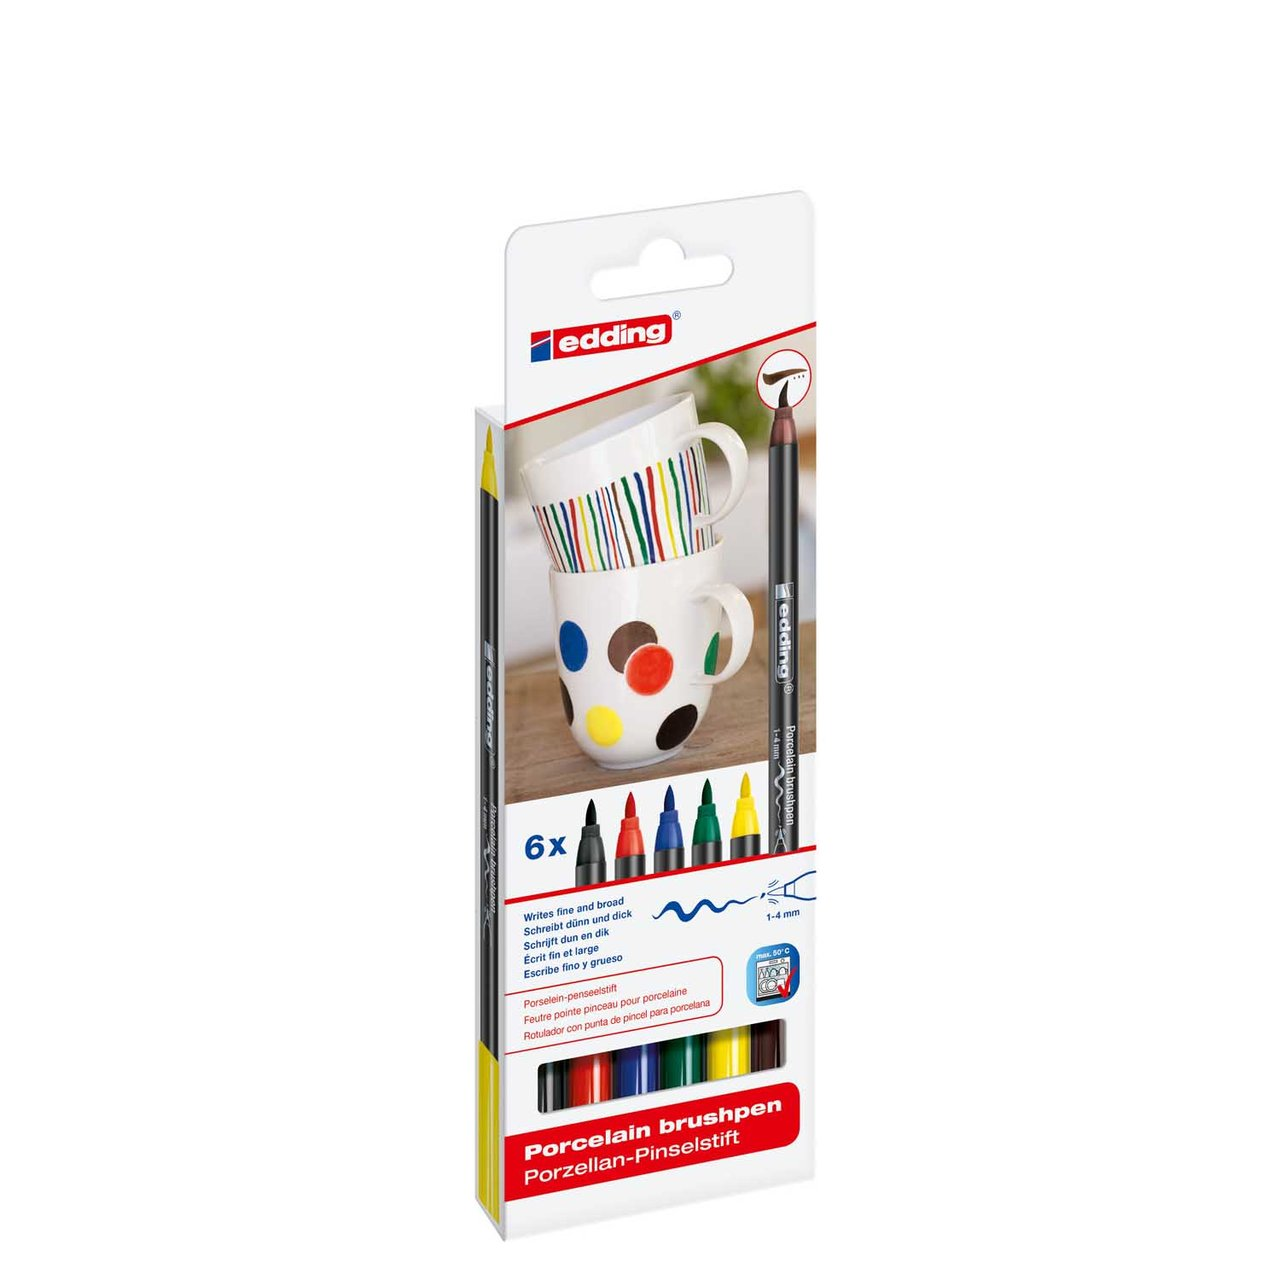 edding 4200/6 S porcelain brushpen family colours von Edding